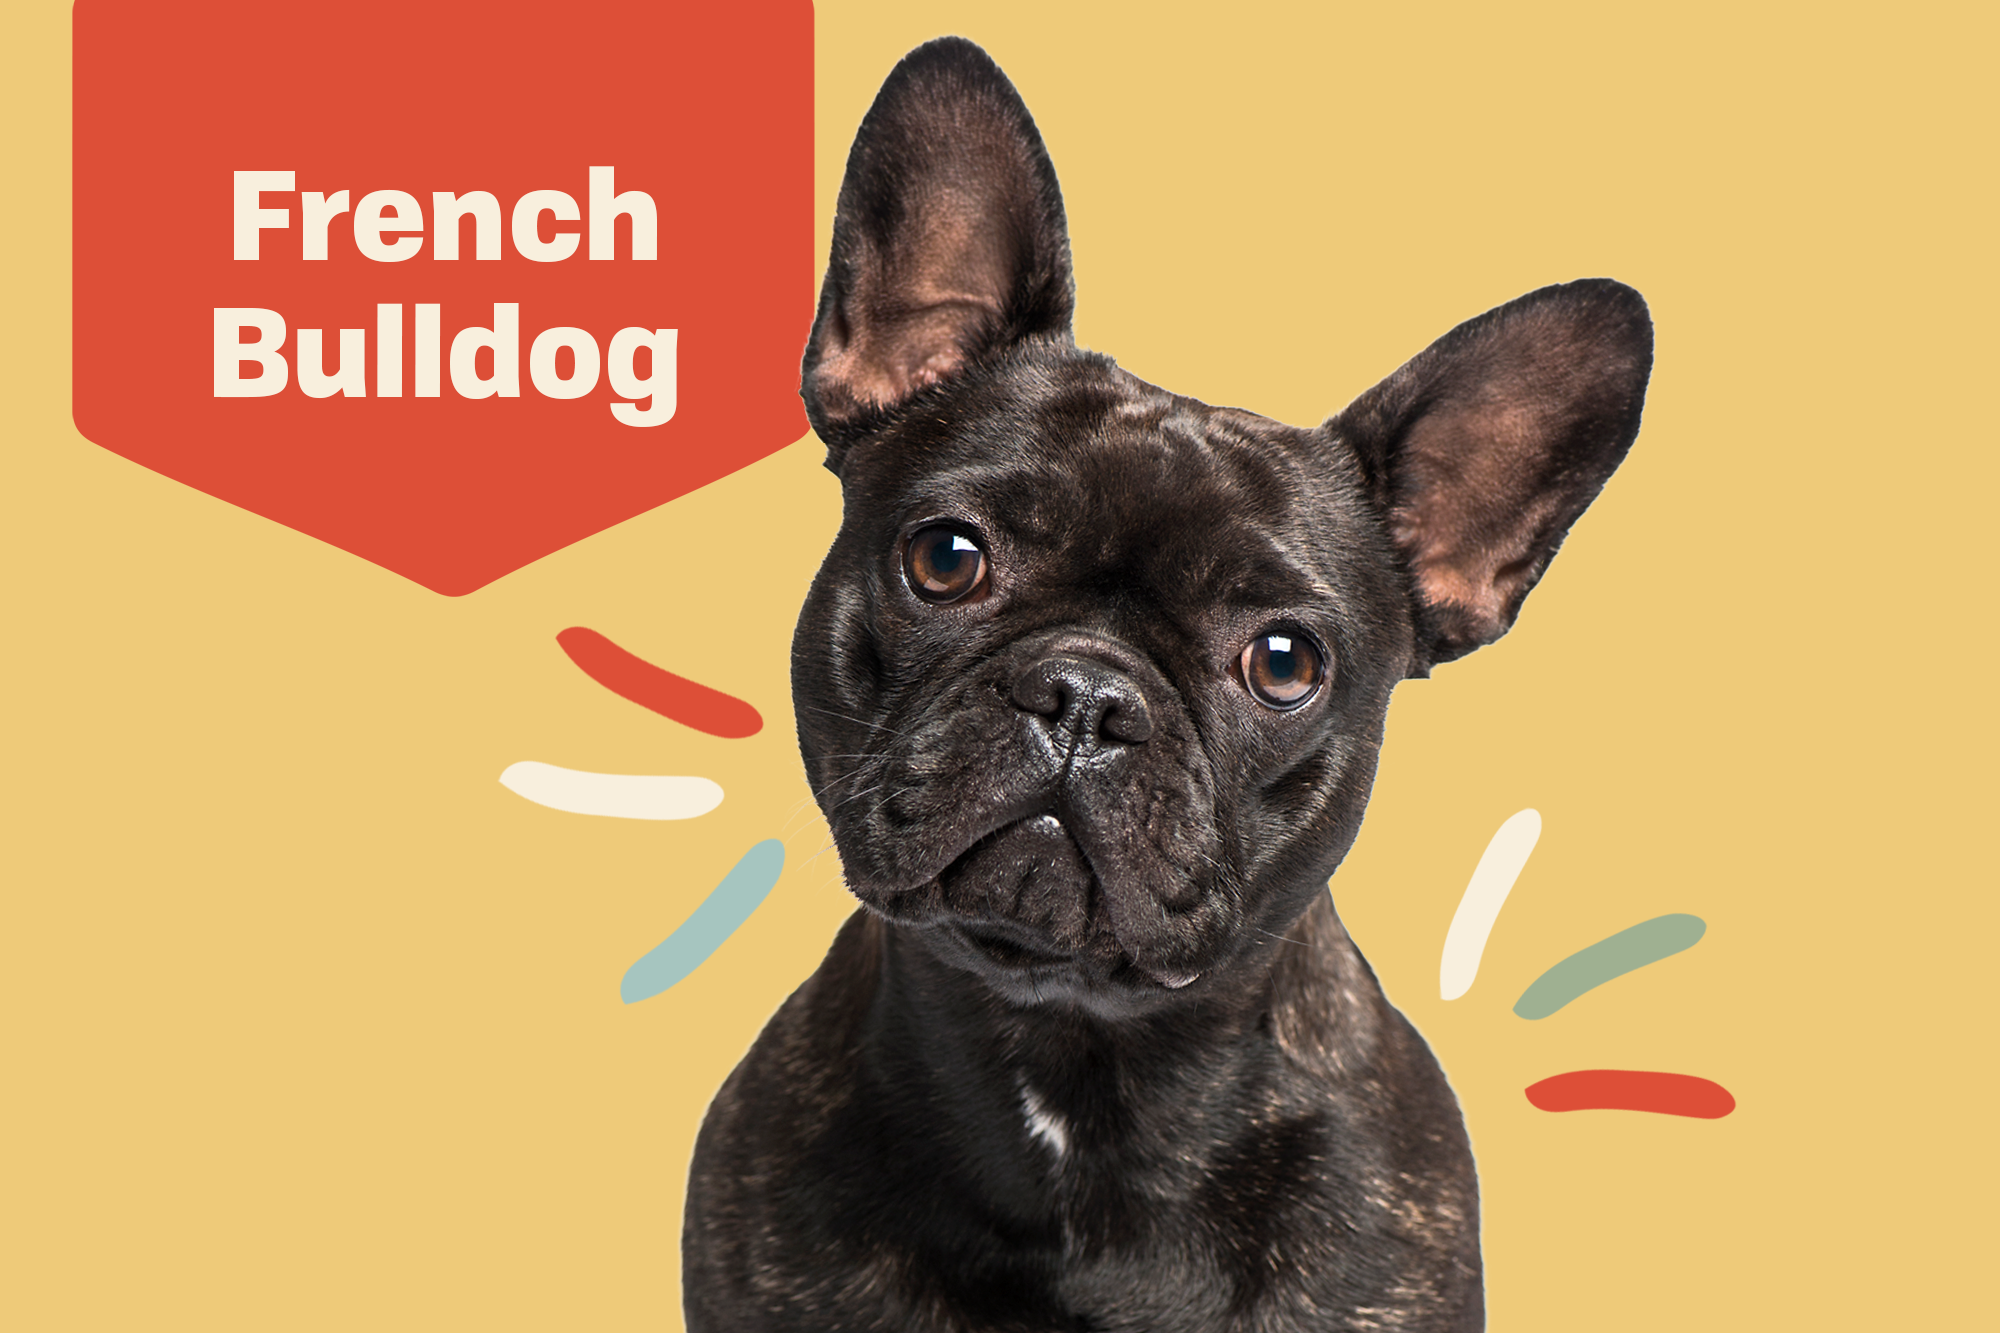 French Bulldog Breed Photo